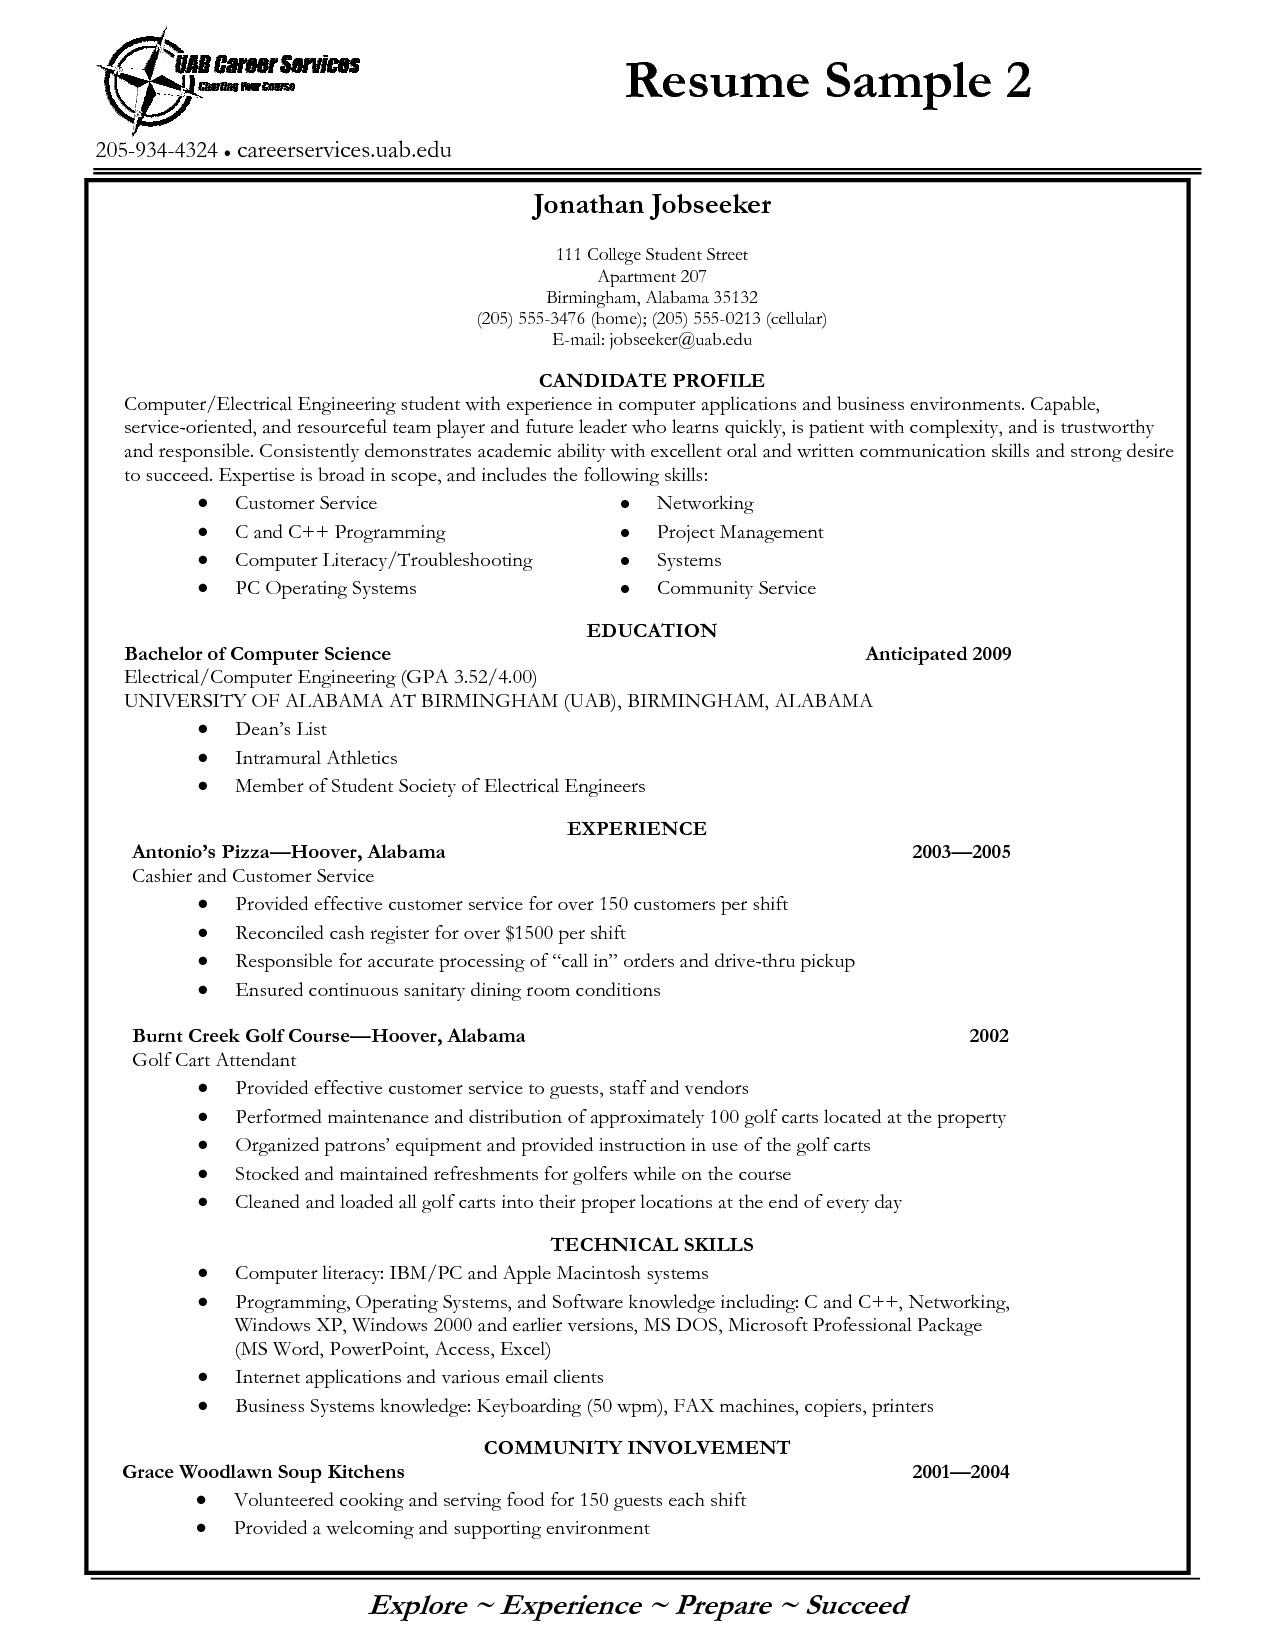 resume examples for high school students applying to collegeresume examples job letter sample